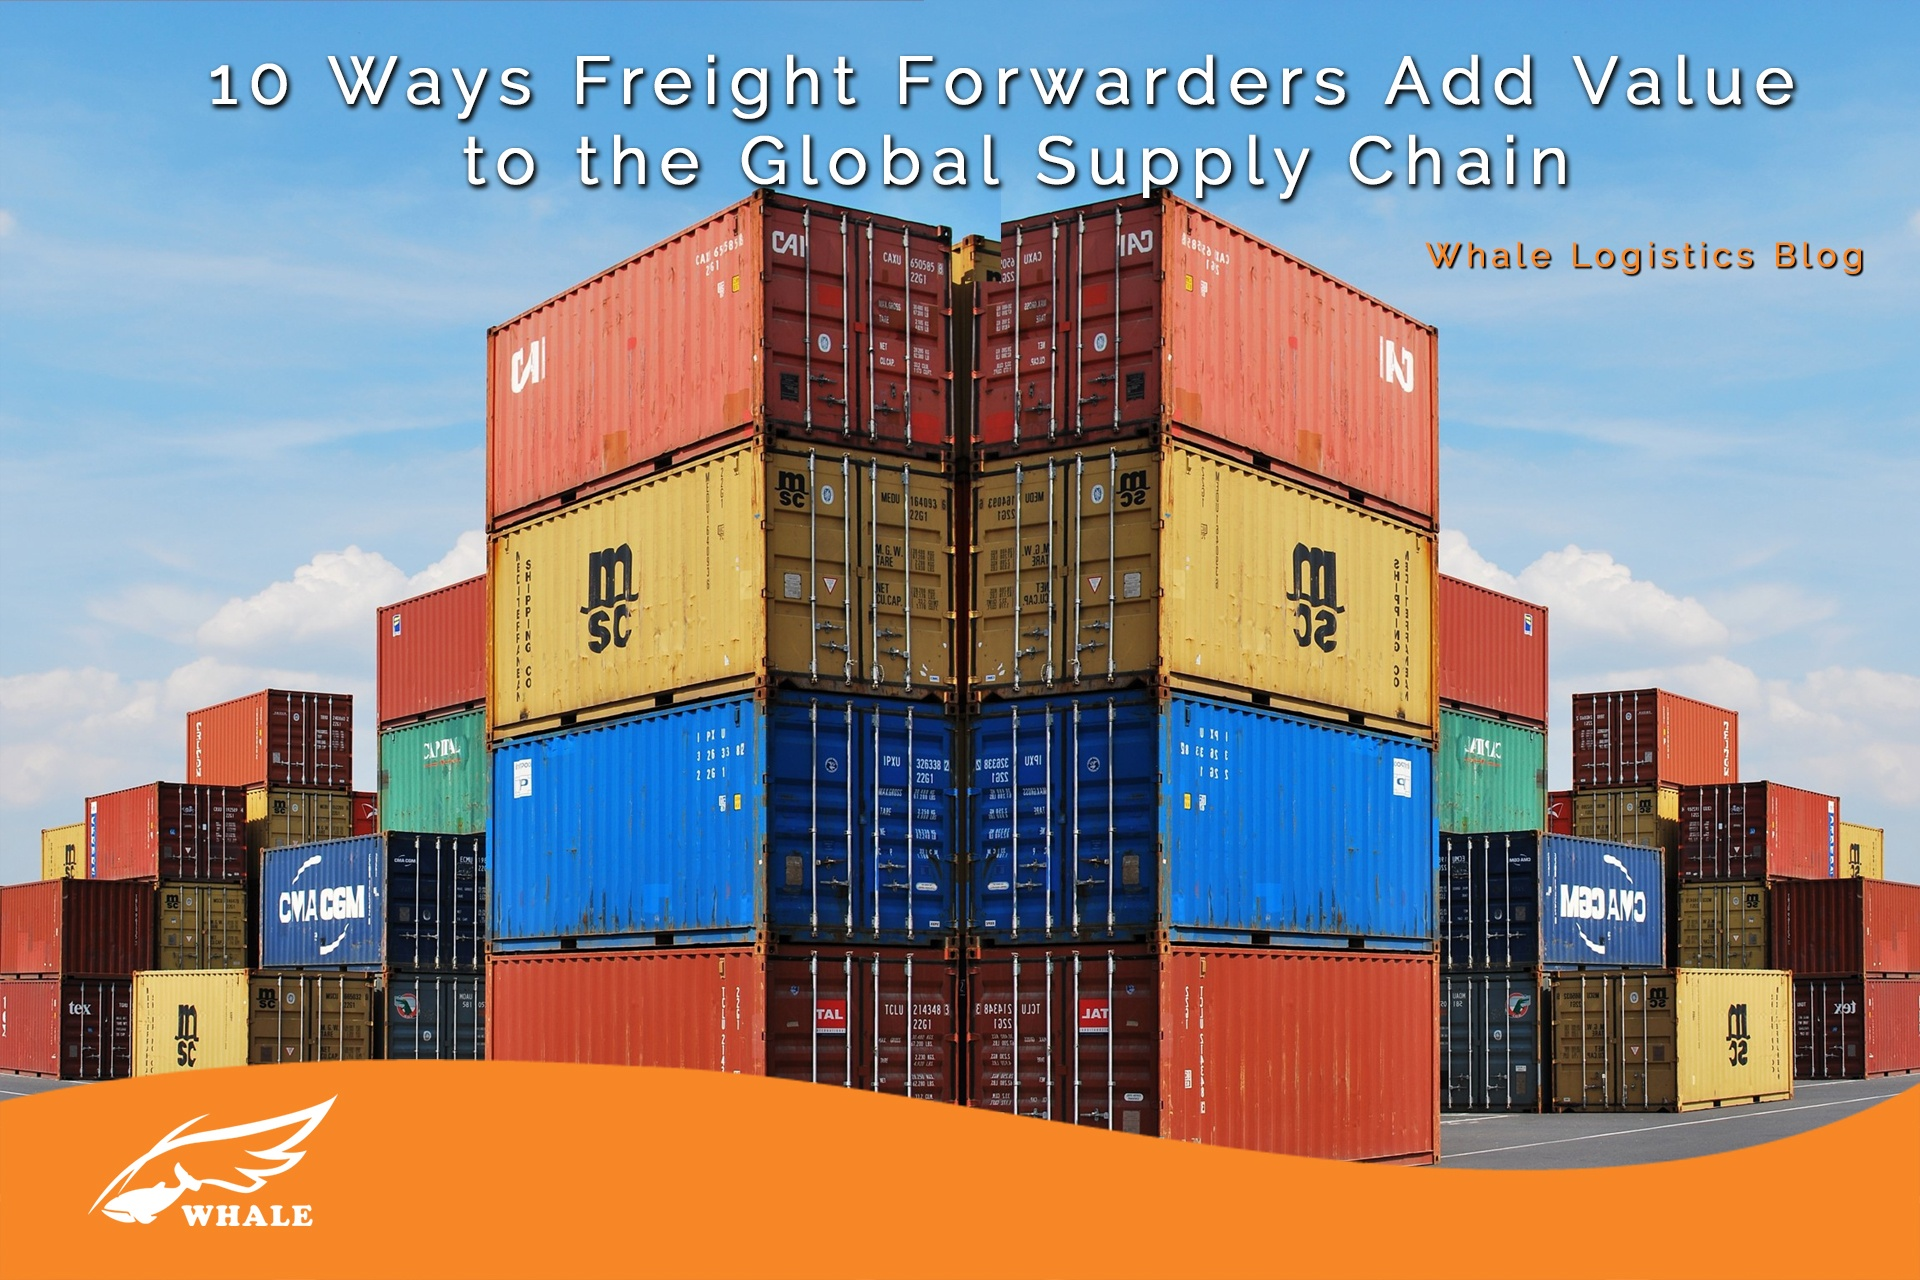 10 Ways Freight Forwarders Add Value to the Global Supply Chain | Whale Logistics Blog